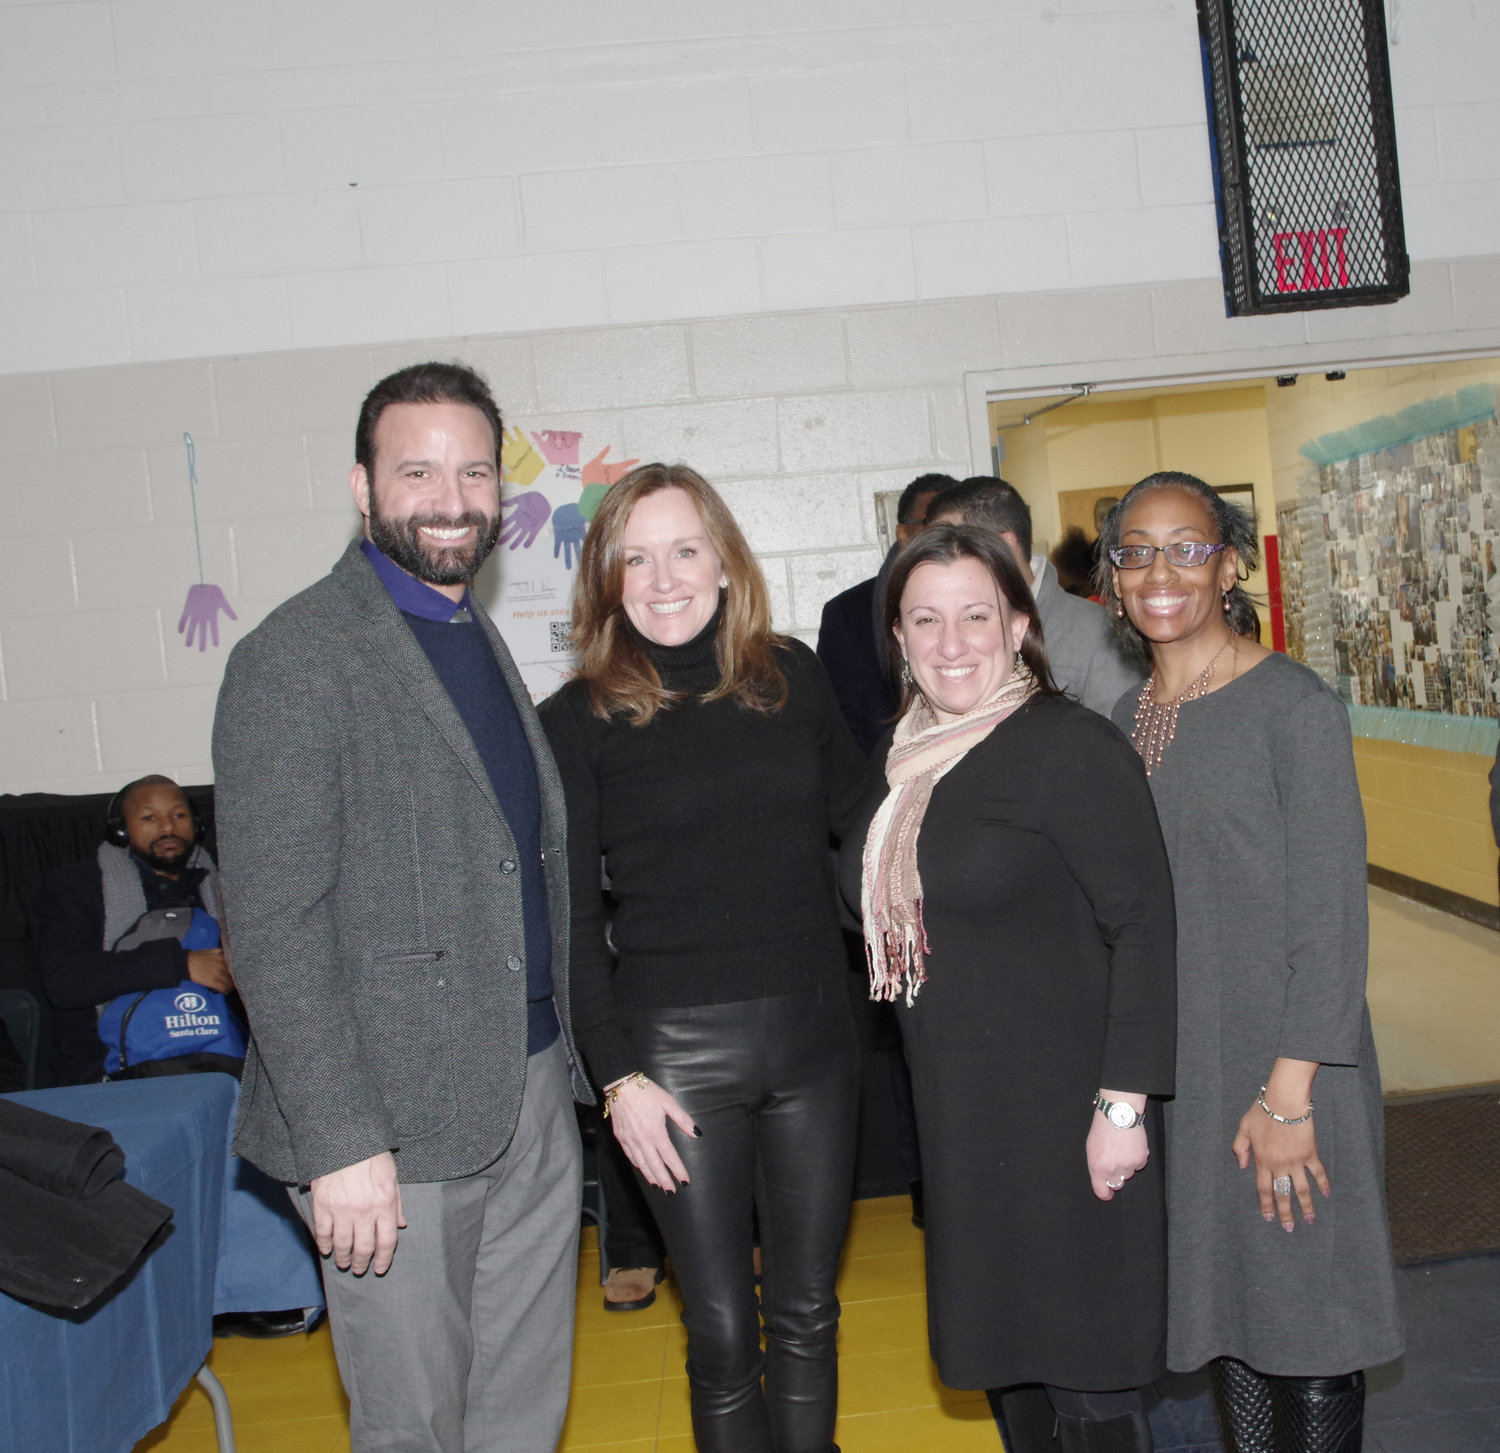 City Council President Anthony Eramo, left, with U.S. Congresswoman Kathleen Rice, City Council Vice President Chumi Diamond and City Councilwoman Anissa Moore.